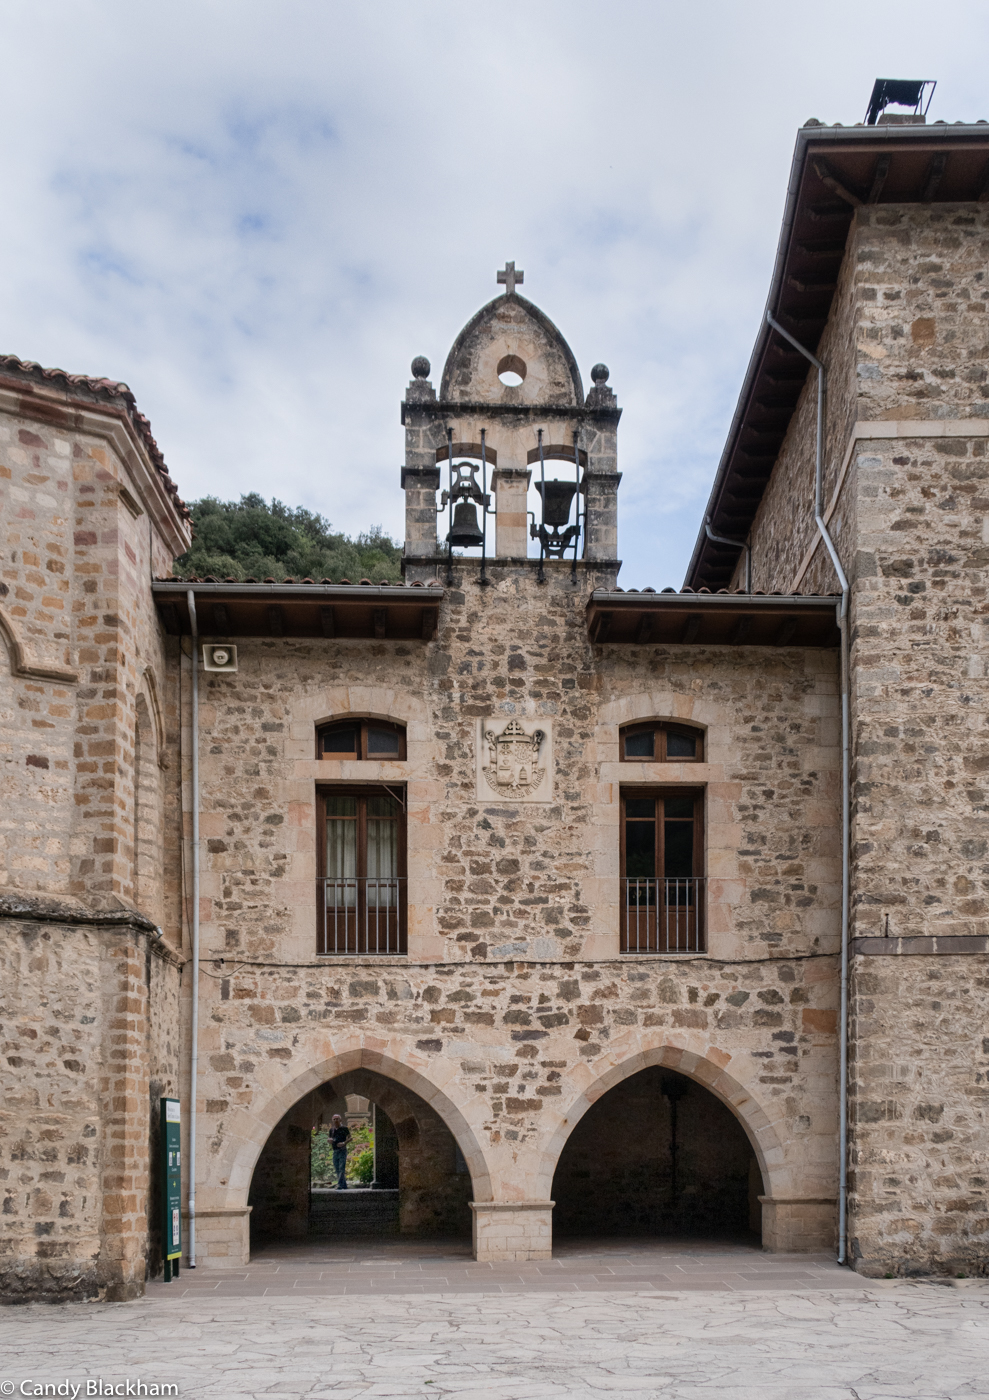 The entrance to the Cloister at San Toribio